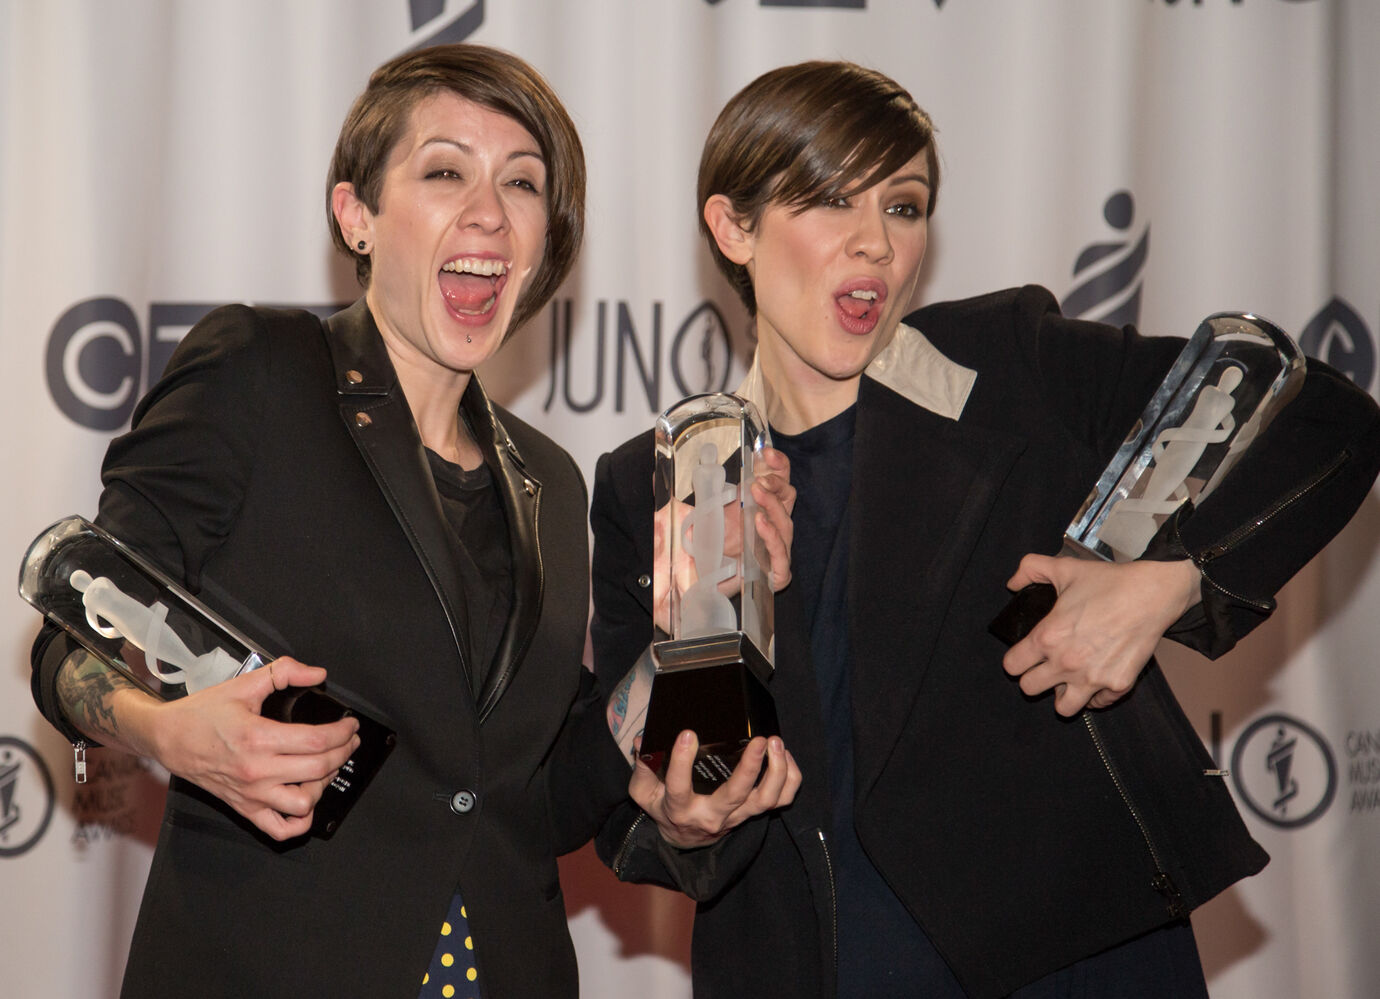 Tegan and Sara receive three 2014 JUNOs at the at the MTS Centre in Winnipeg on Sunday, March 30, 2014. They won for Single of the Year, Group of the Year and Pop Album of the Year. (Crystal Schick / Winnipeg Free Press)